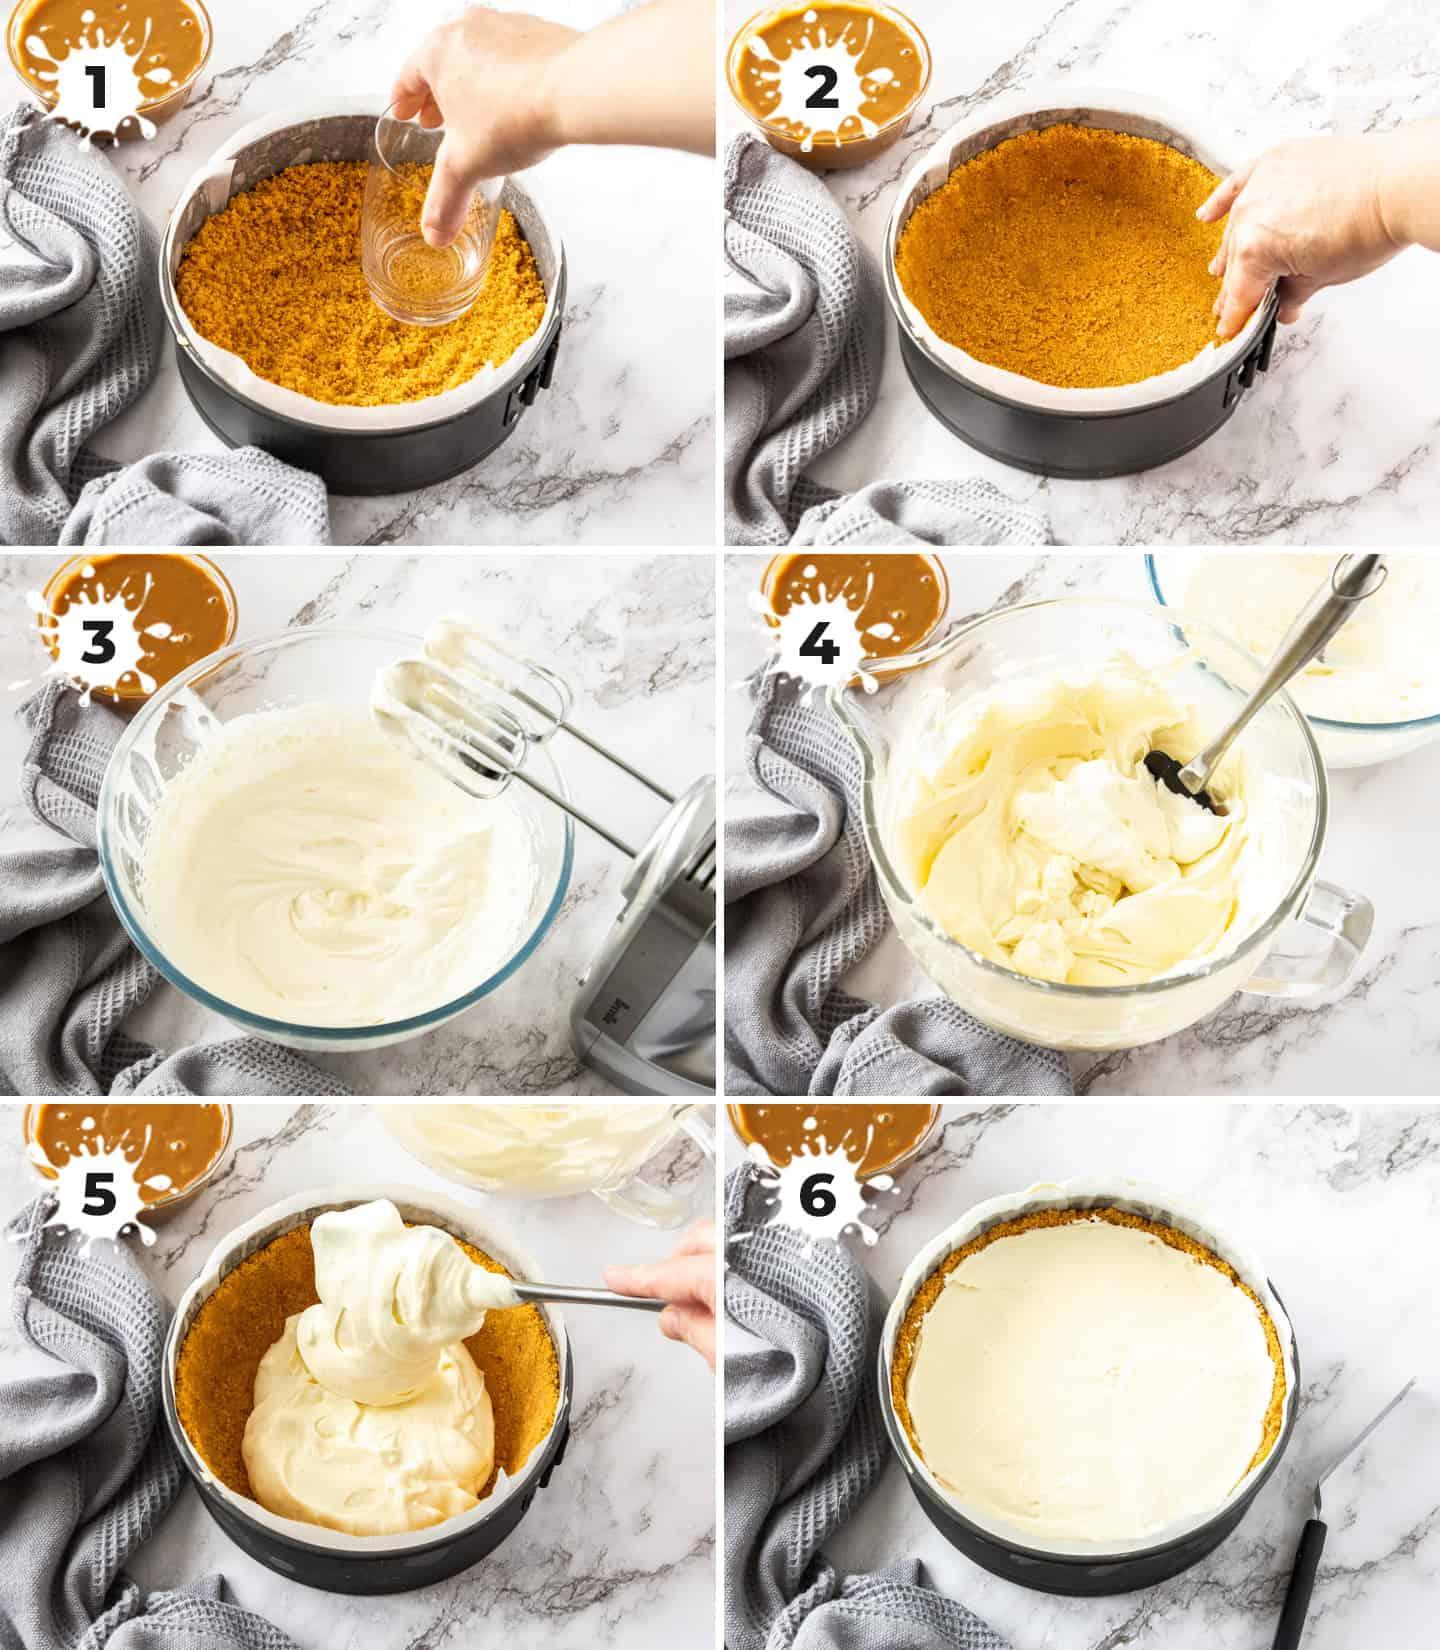 A collage of 6 images showing the steps to making the cheesecake.